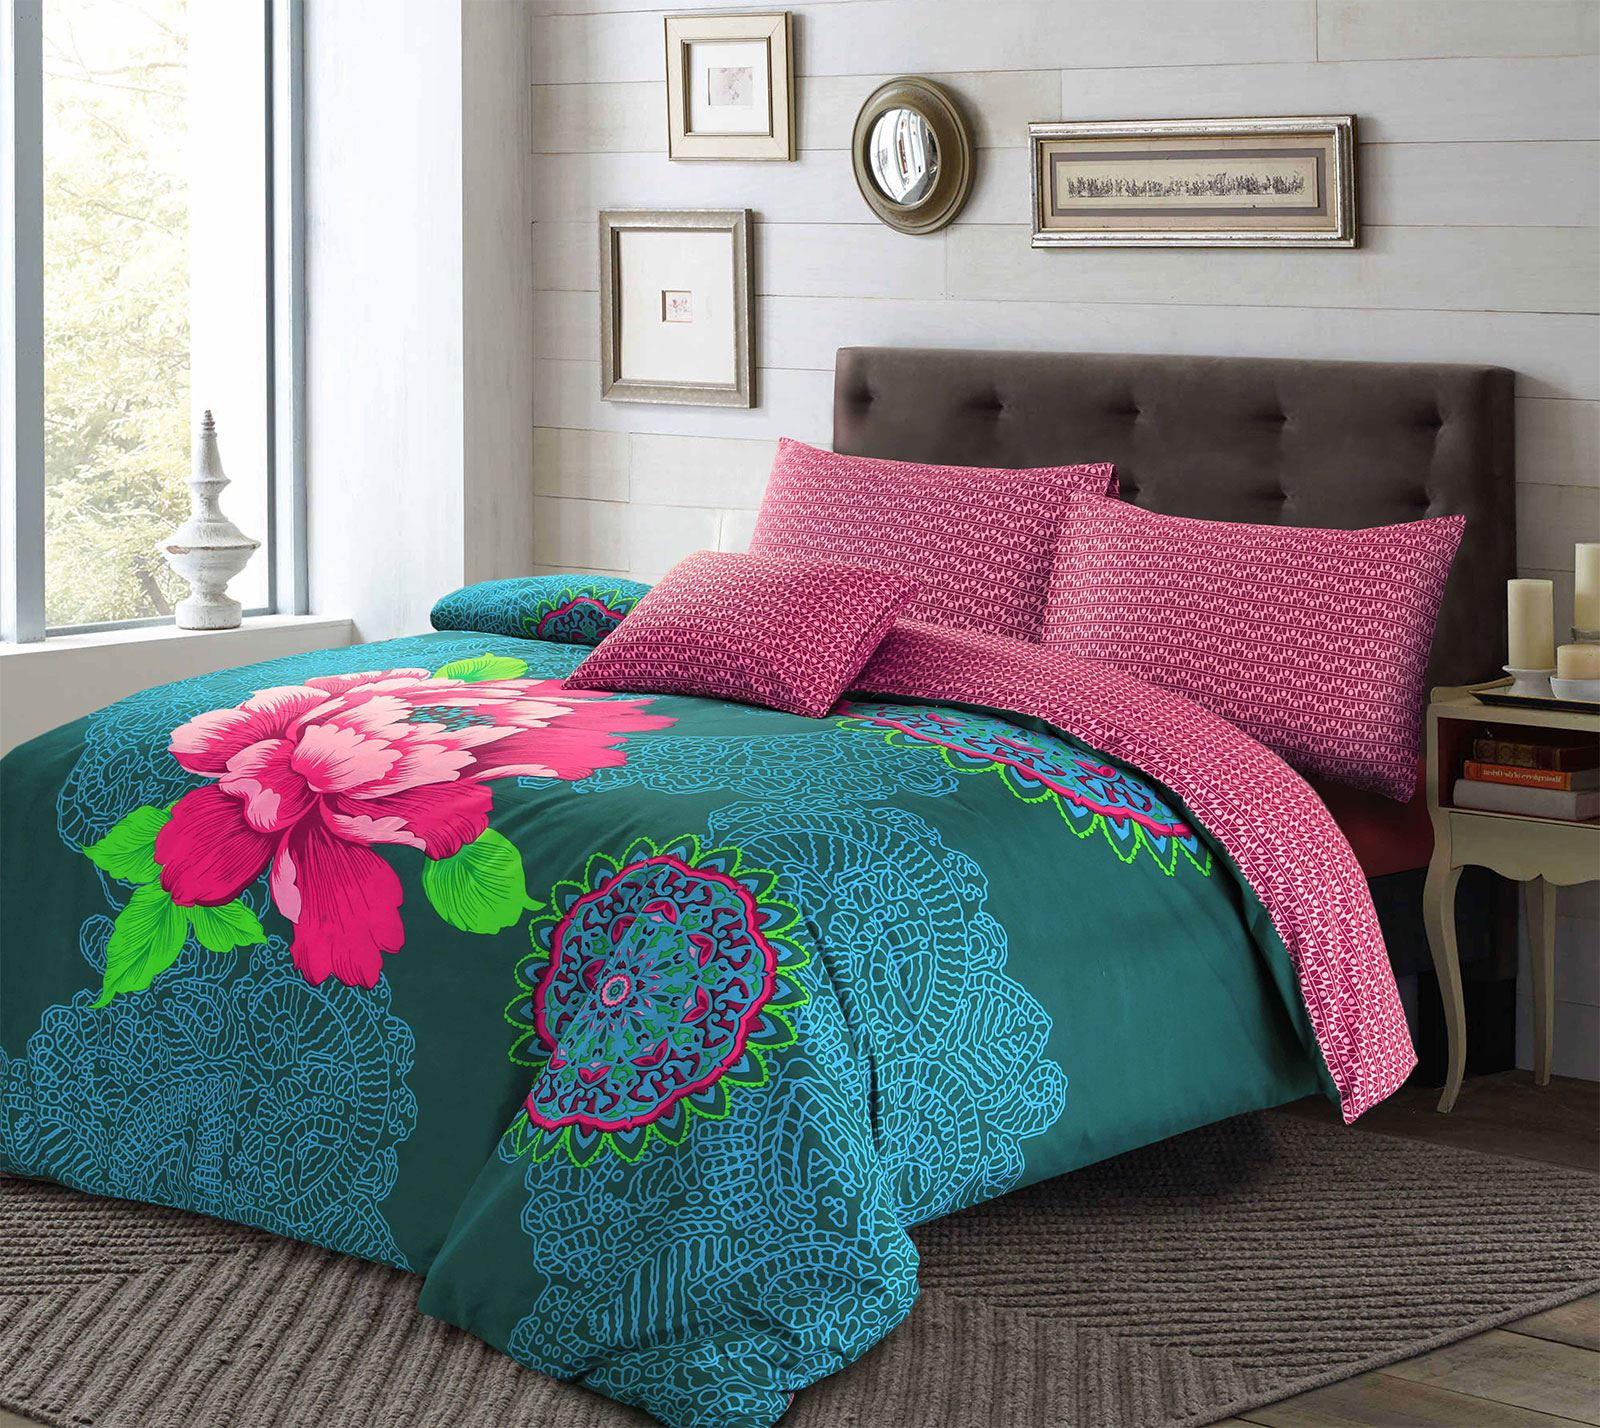 big bohemian chelsea com set essence walmart cover covers bed apartment home w bedding quilt full womens duvet sets